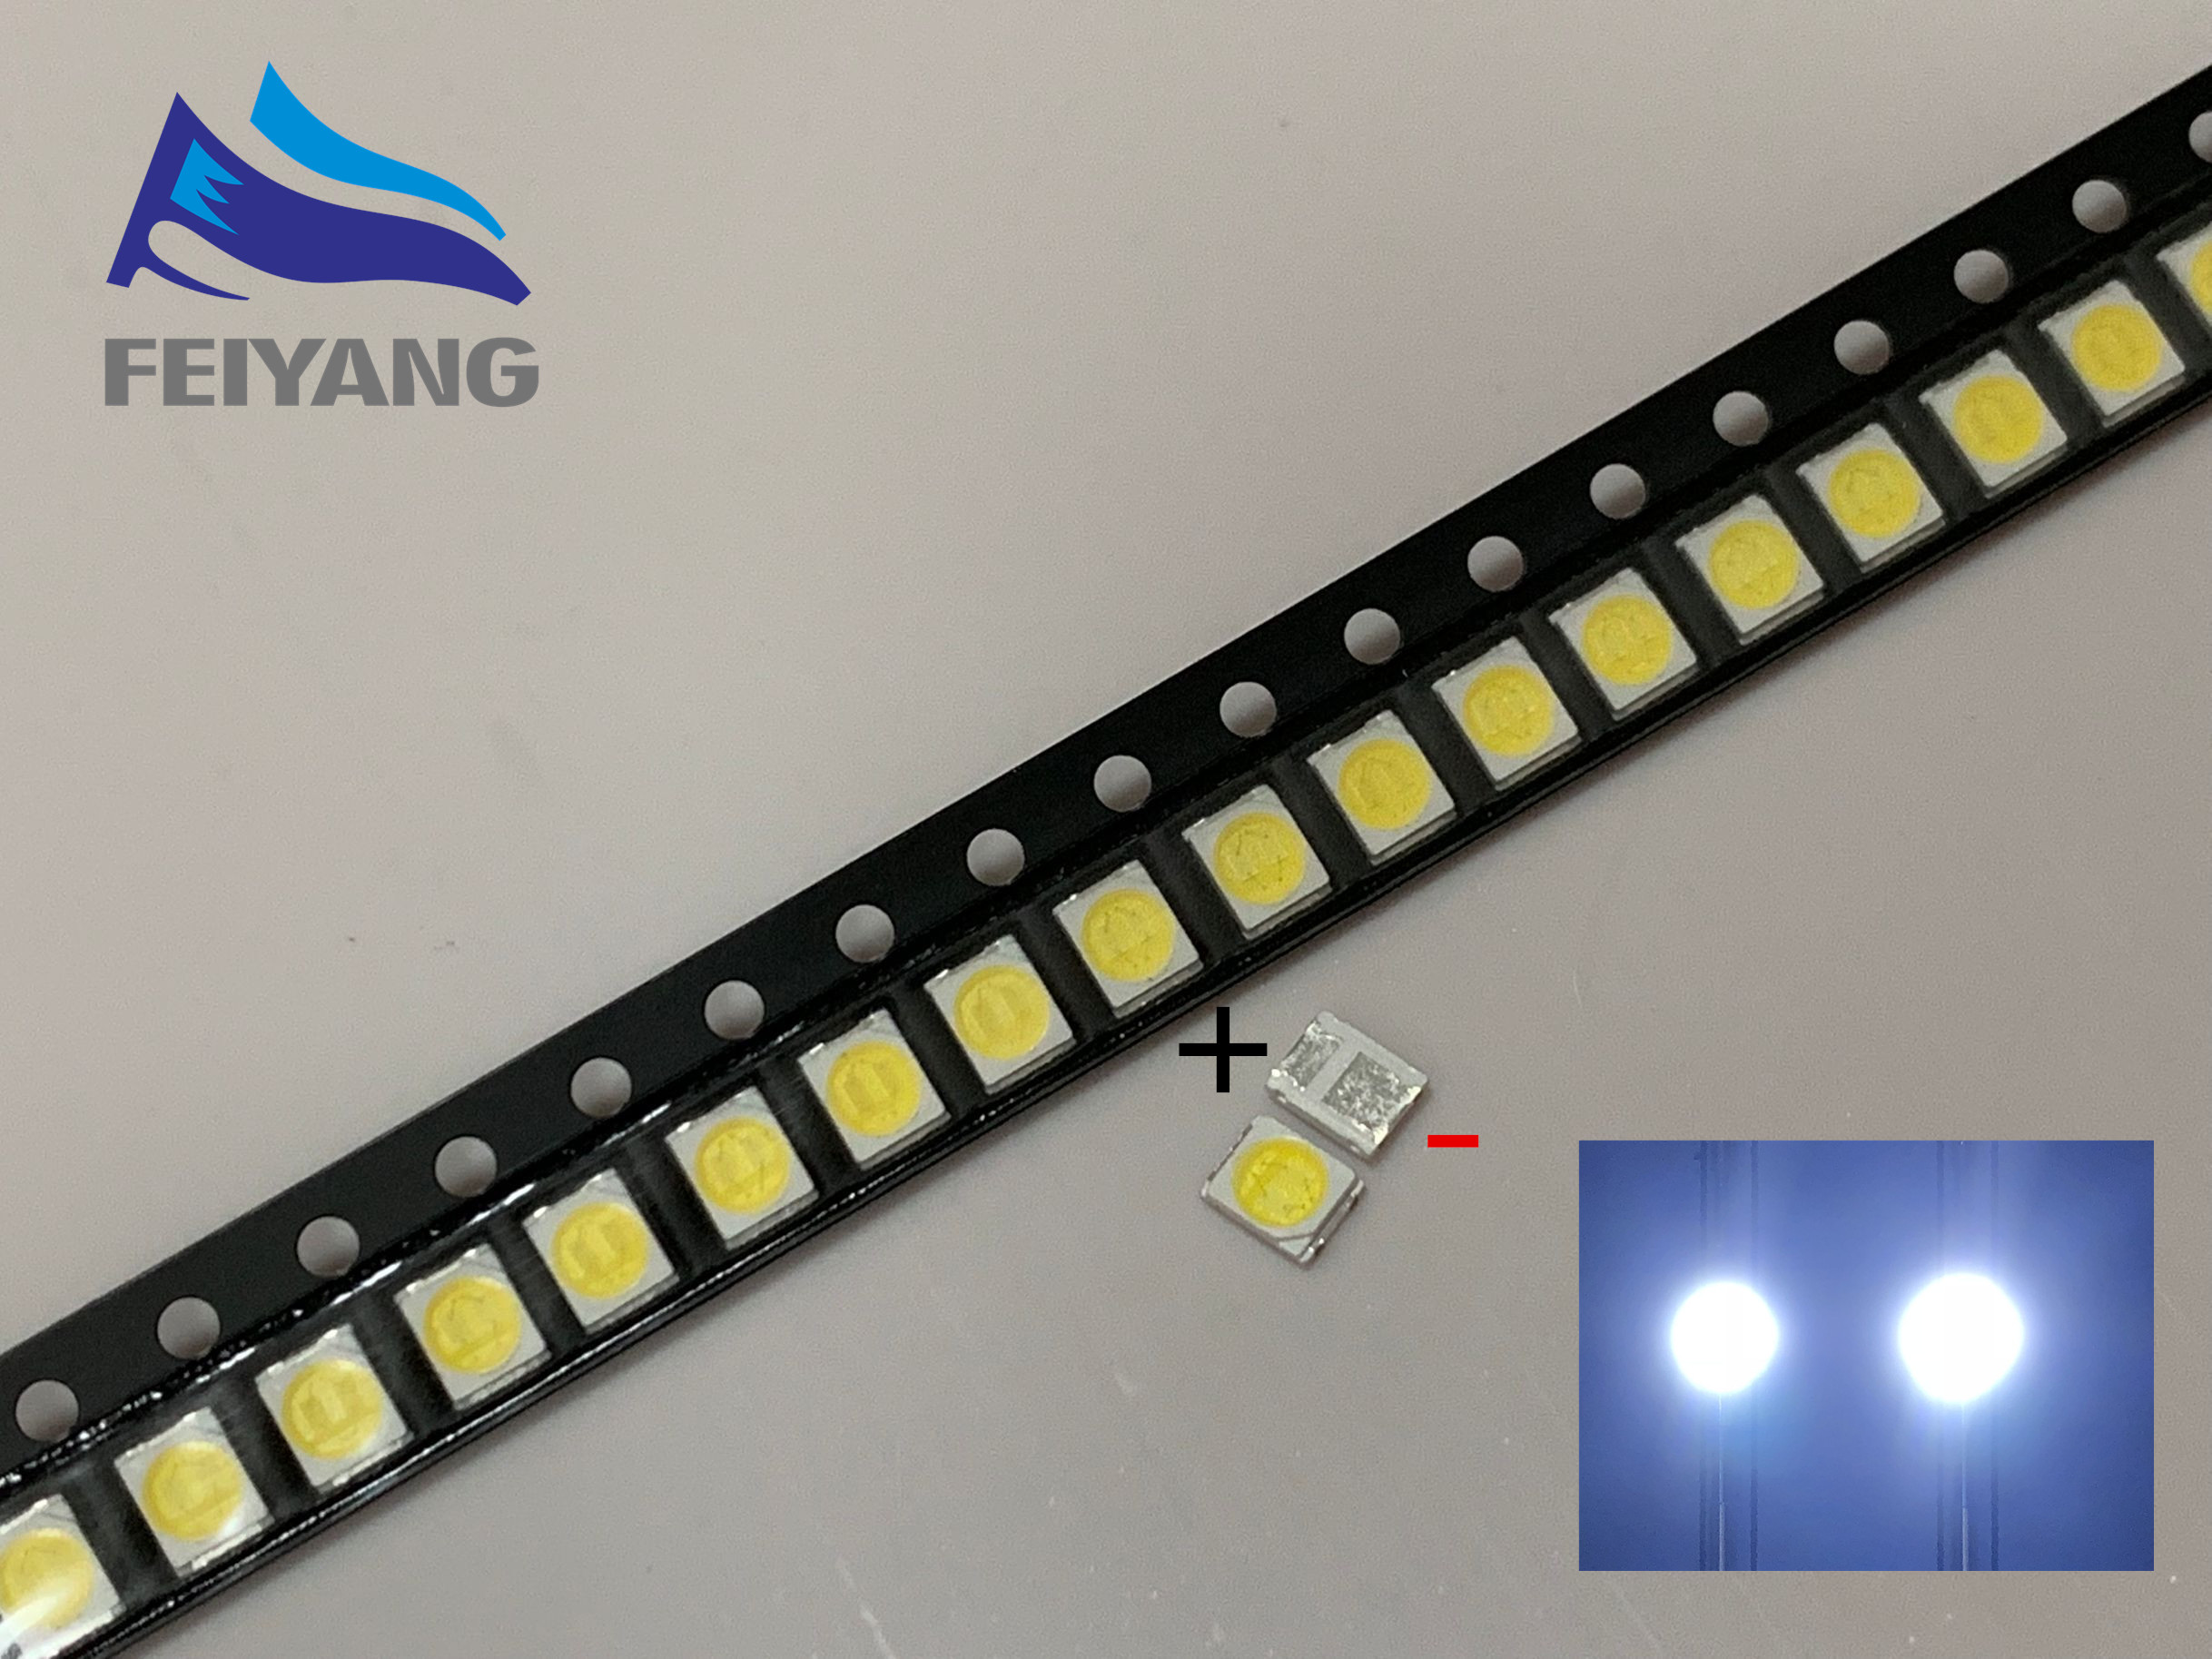 1000PCS Original LEXTAR <font><b>2835</b></font> 3528 1210 3V 1w-2W <font><b>SMD</b></font> <font><b>LED</b></font> For Repair TV Backlight Cold white LCD Backlight <font><b>LED</b></font> image